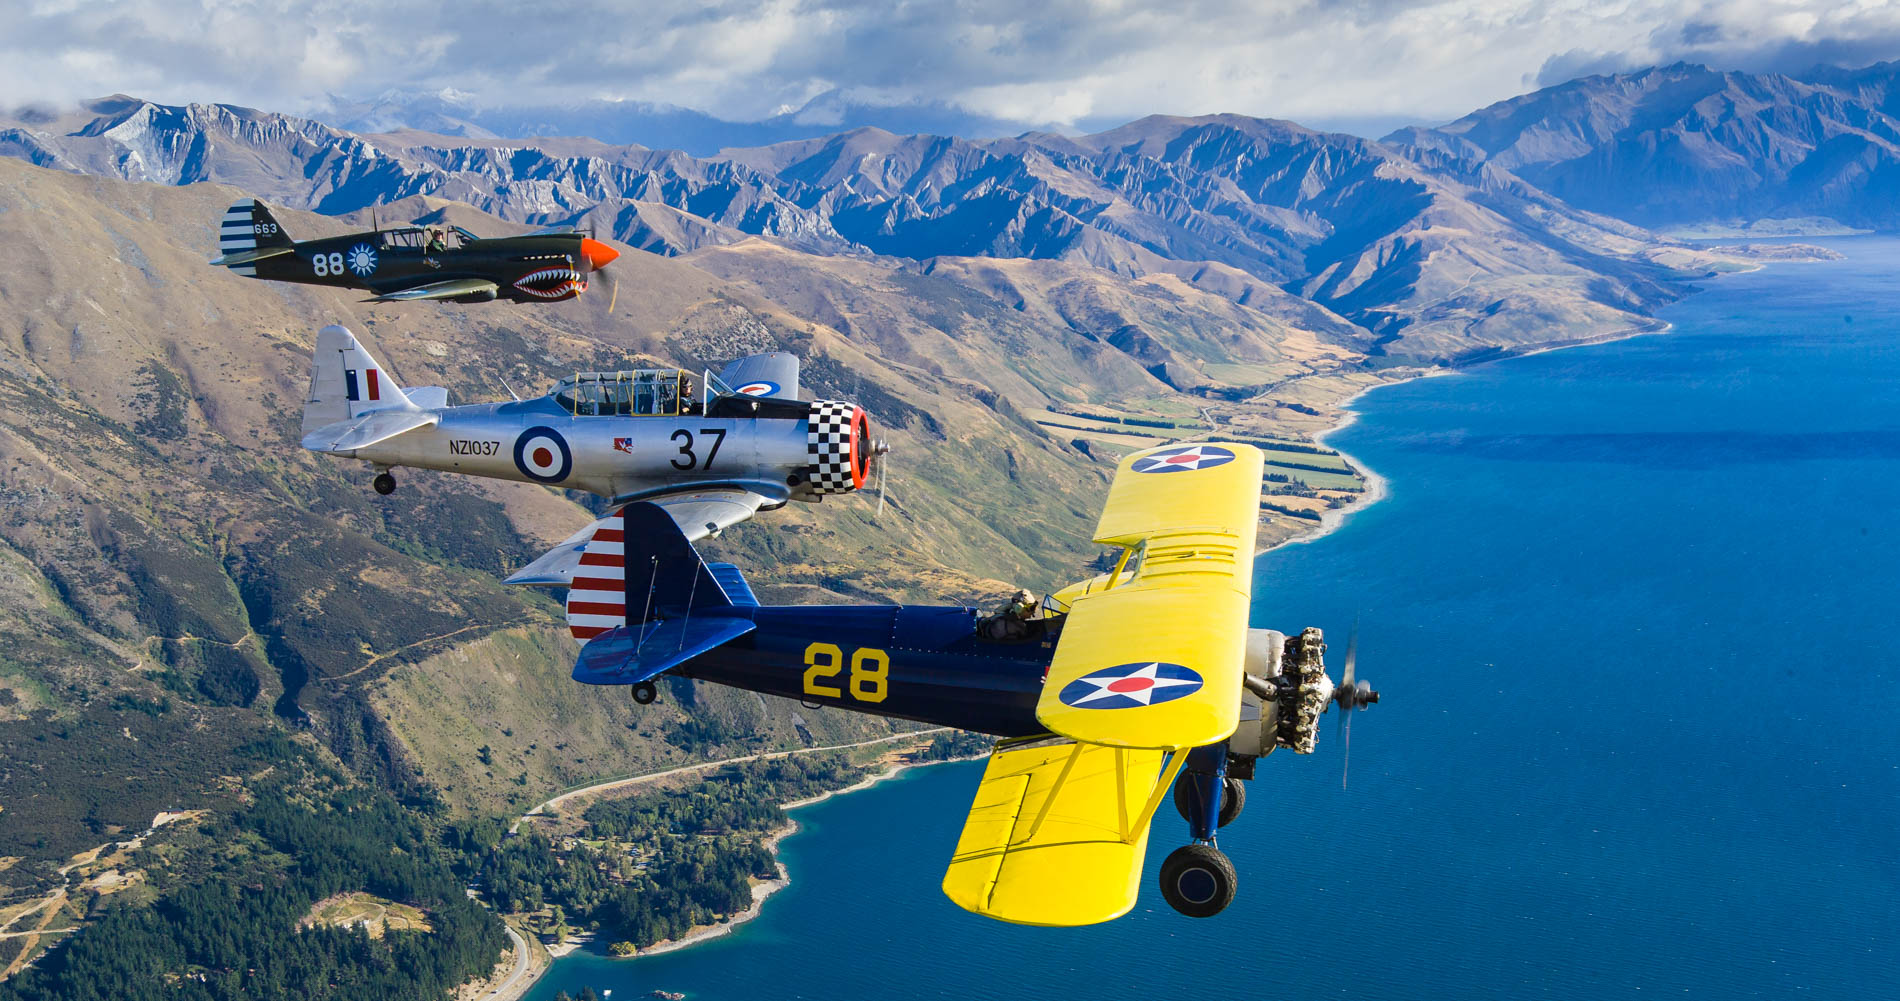 Aeronautica, Air to Air, New Zealand Aotearoa